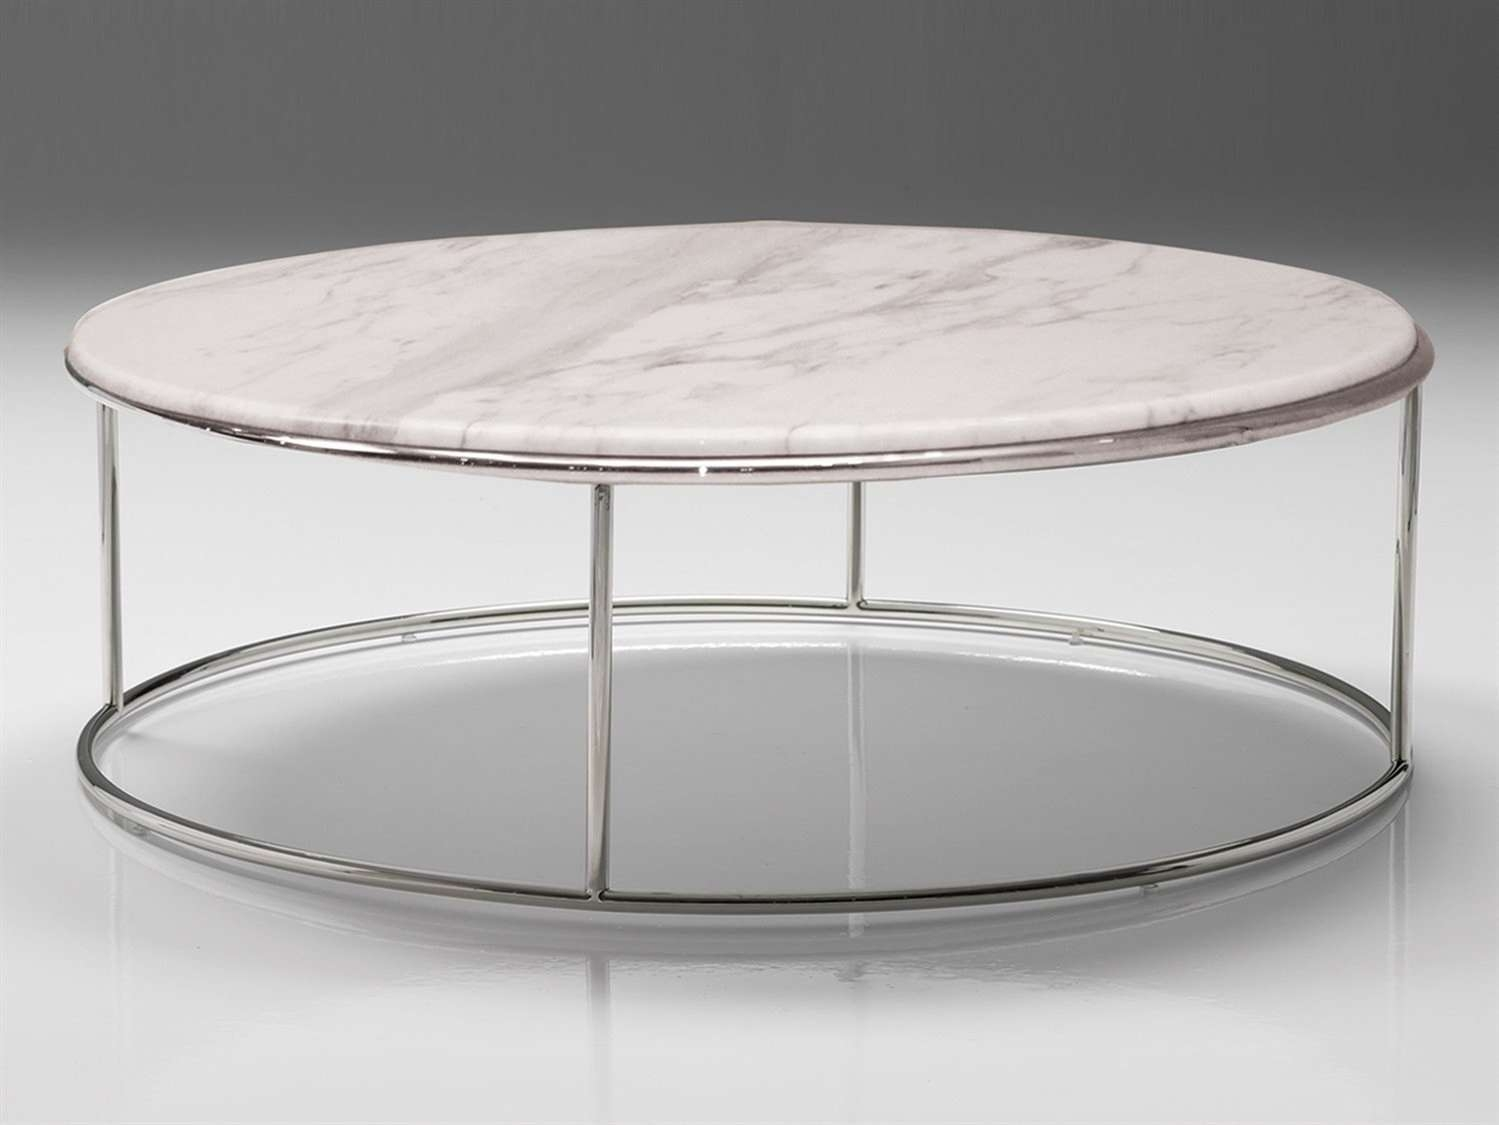 Round Marble Coffee Table Pertaining To 2018 White Marble Coffee Tables (View 17 of 20)